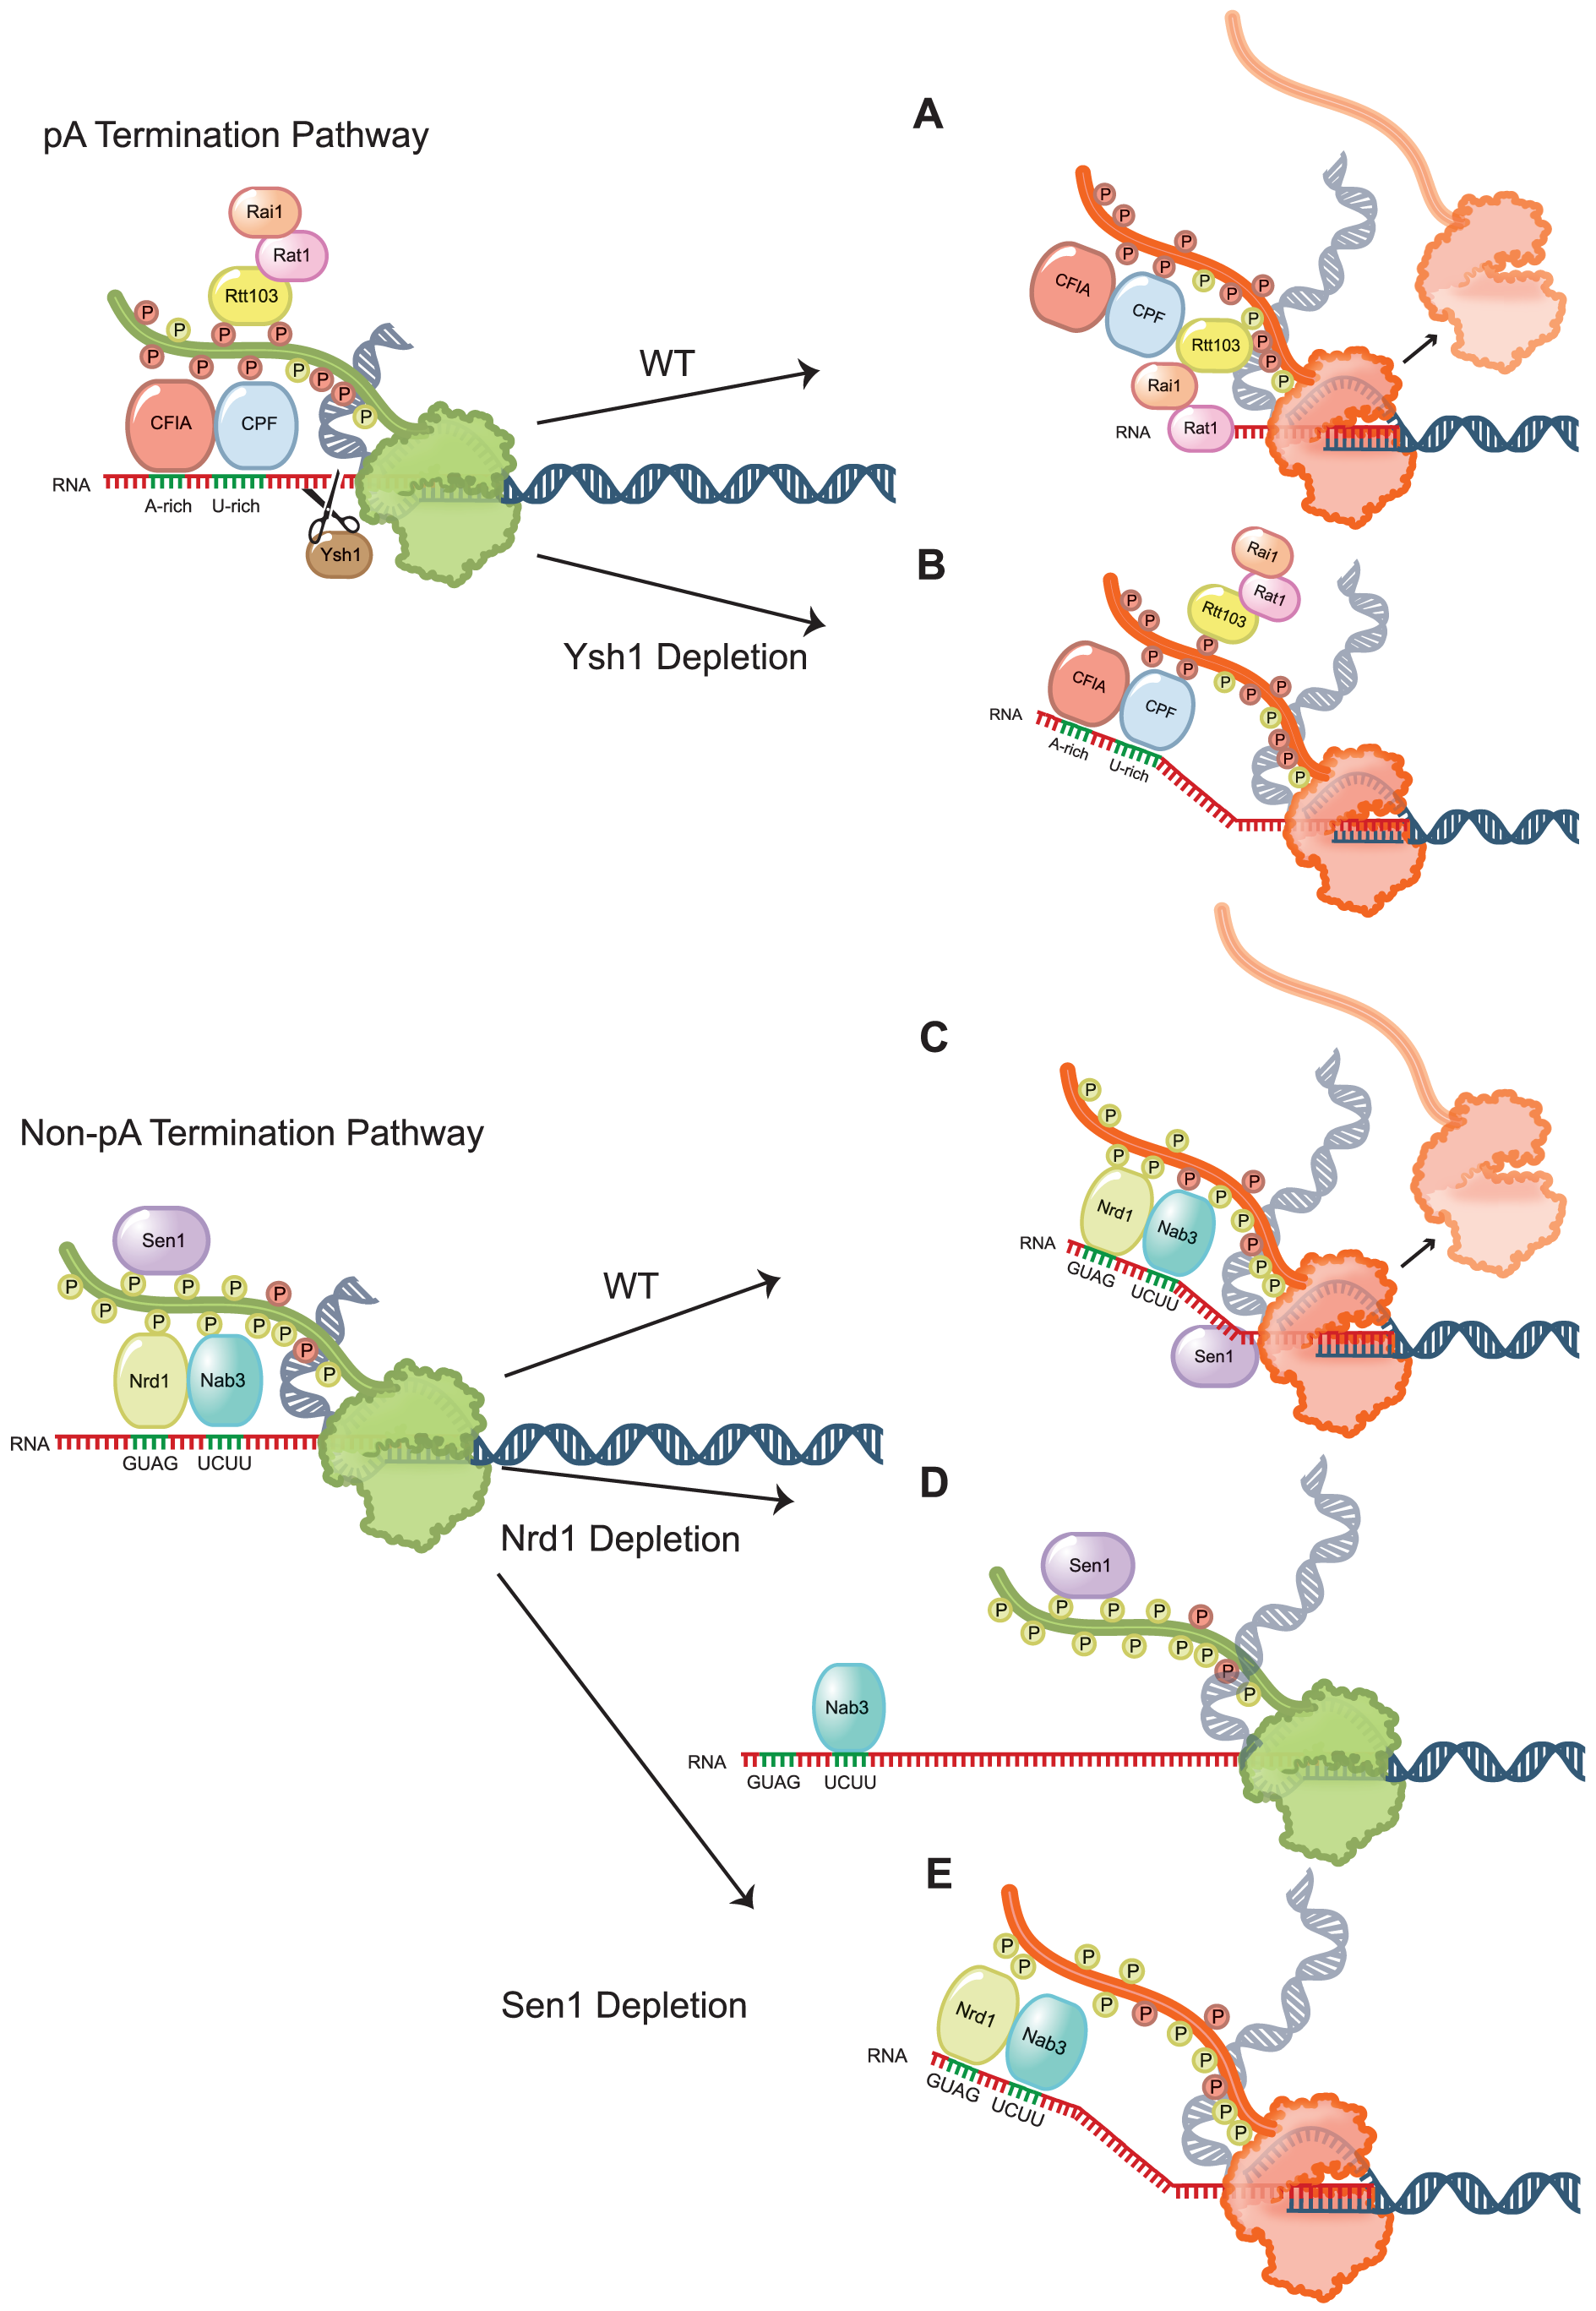 Schematic representation of Pol II termination after removal of non-pA and pA termination factors.